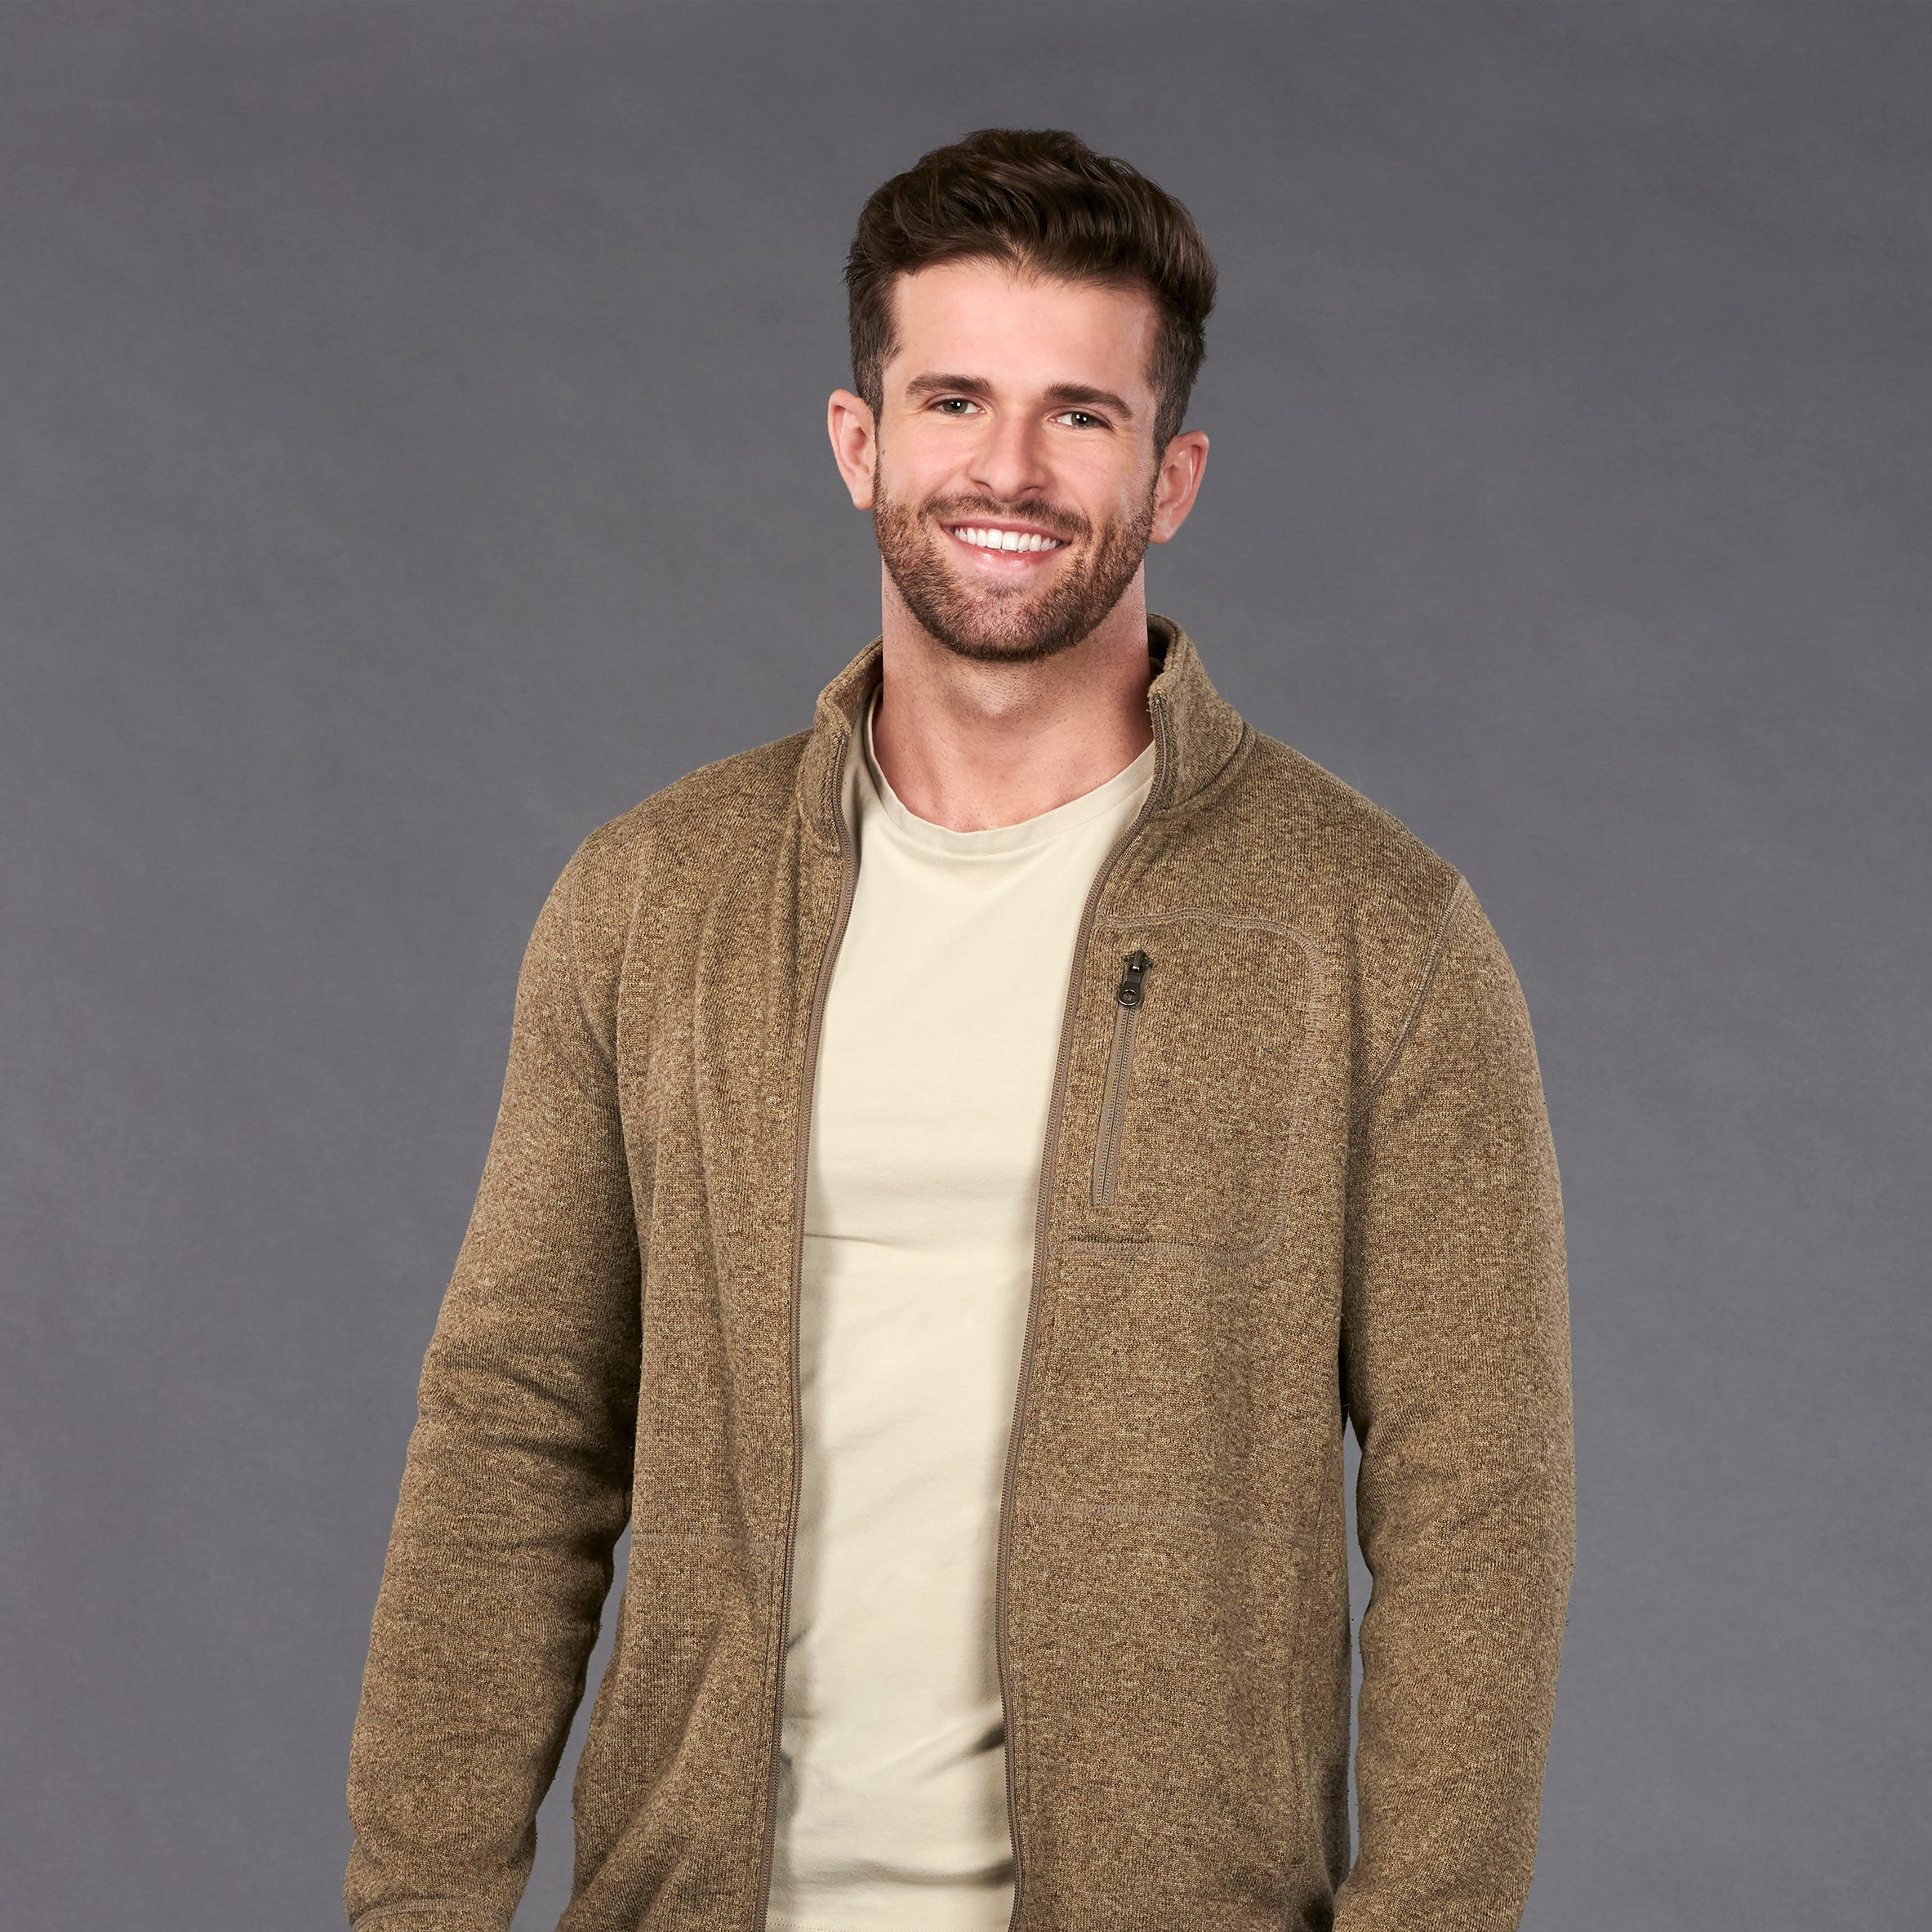 Knoxville's Jed Wyatt on 'The Bachelorette': 3 reasons he could win it all